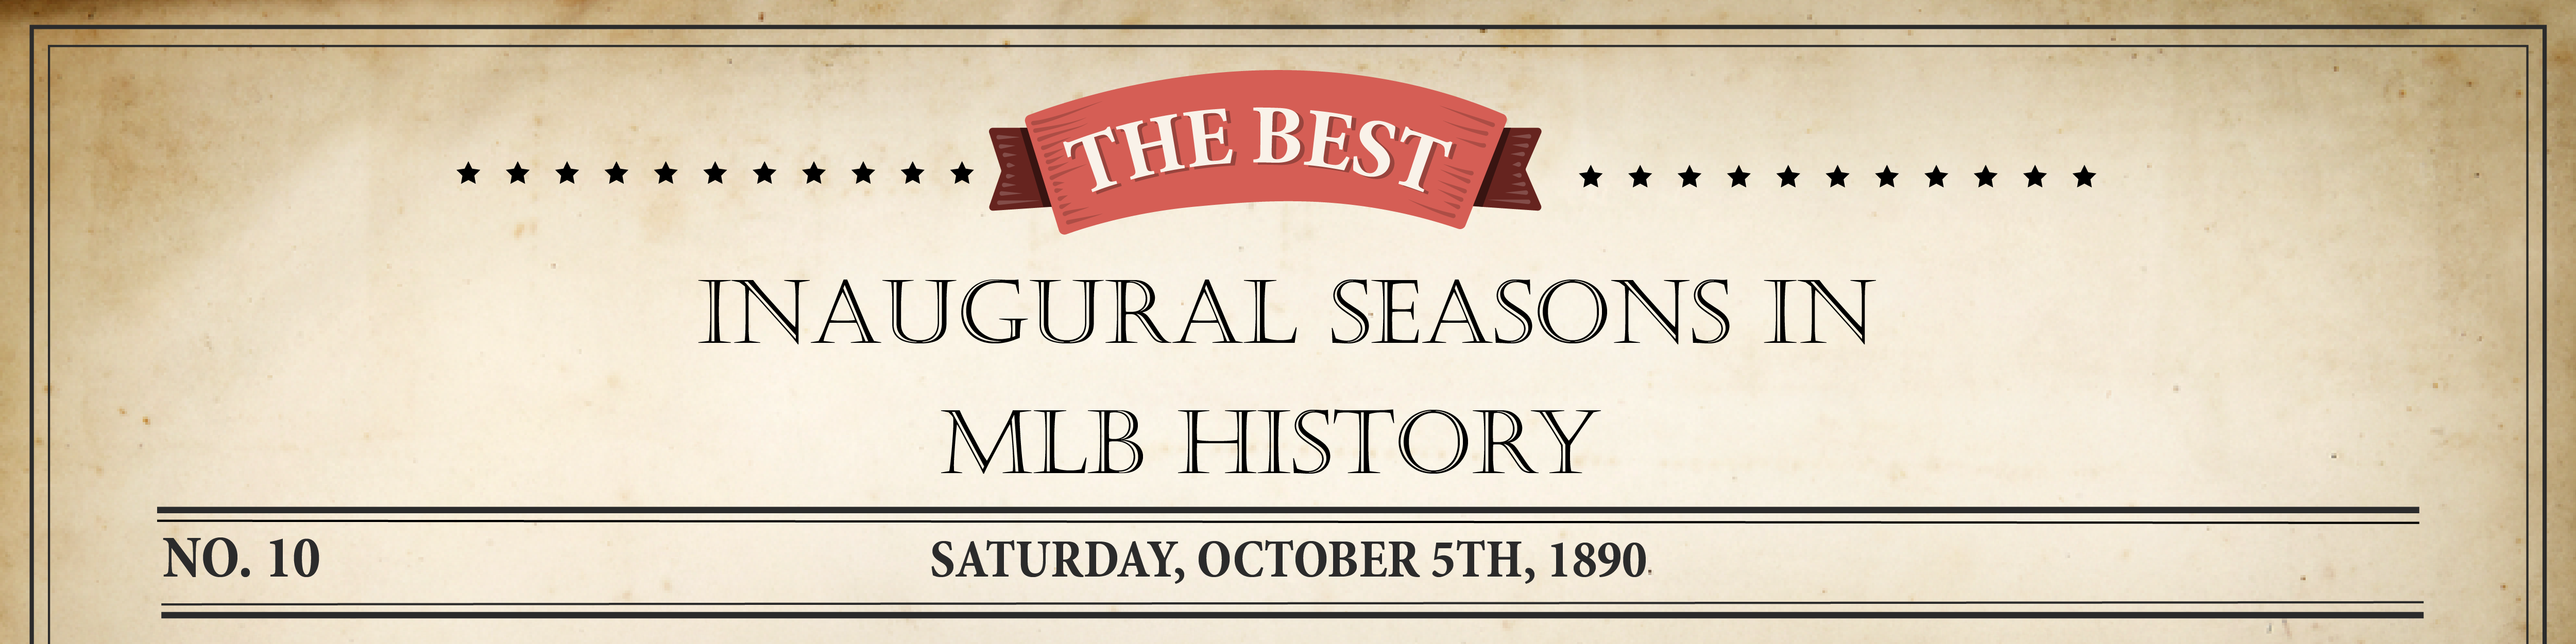 MLB_Best-Inaugural-Baseball-Header